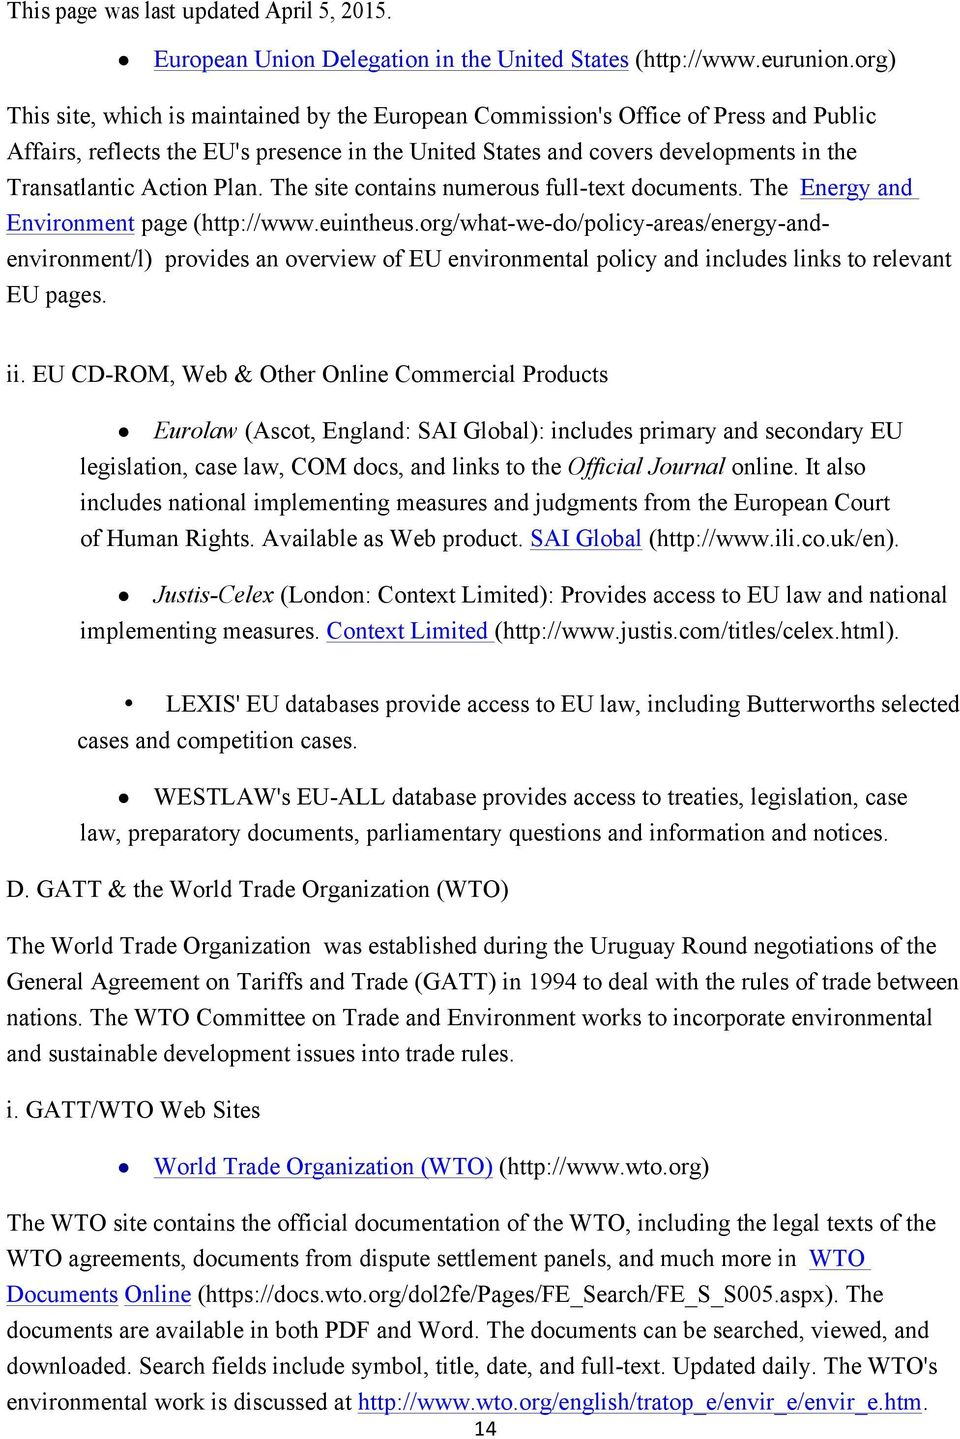 Action Plan. The site contains numerous full-text documents. The Energy and Environment page (http://www.euintheus.